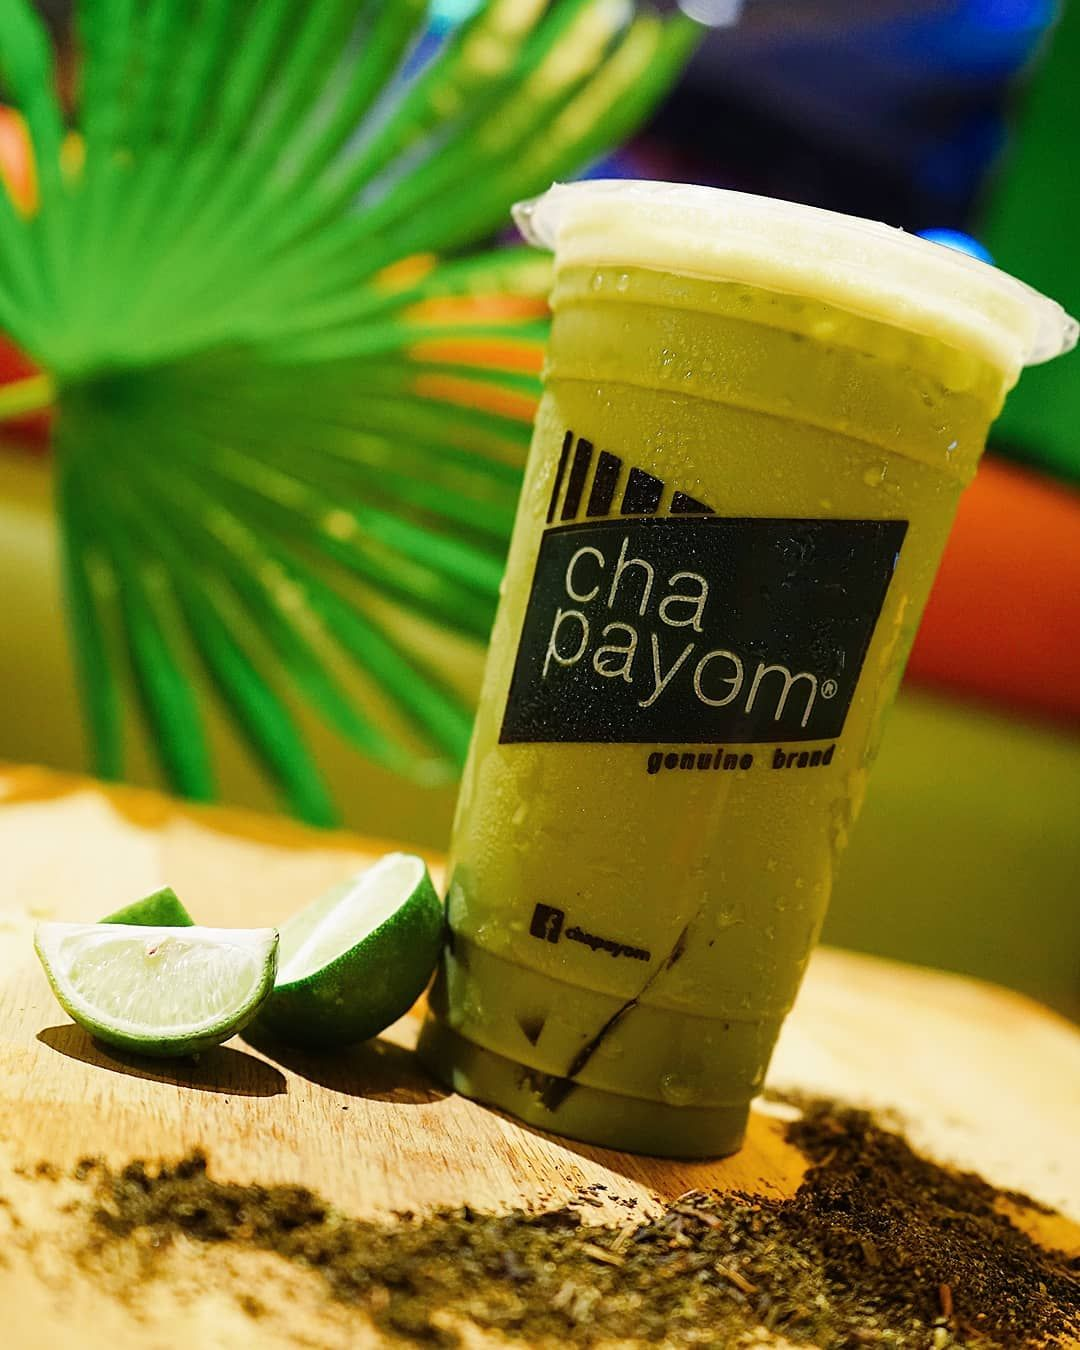 ☀️ Feeling THIRSTEA? ☀️ On these hot and hazy days, cool down with our fresh and cold Thai Green Tea with your choice of toppings. 😎